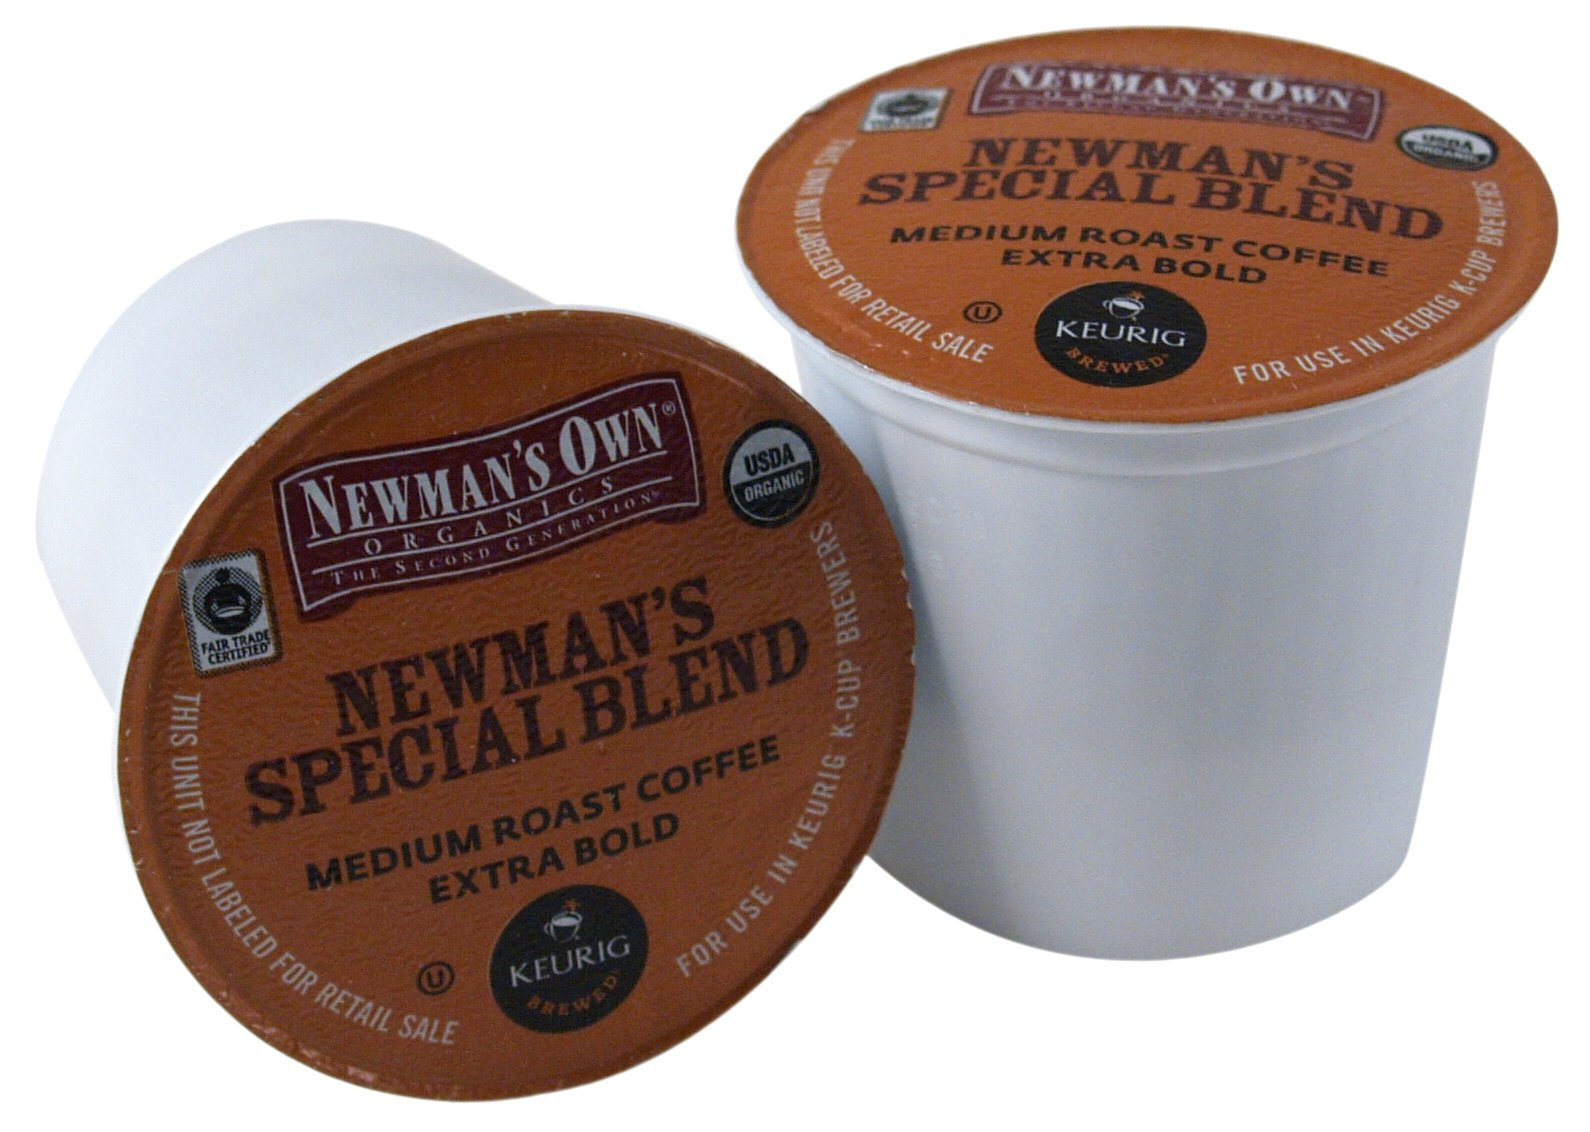 Newman's Own Organics Special Blend Extra Bold Coffee Keurig K-Cups, 180 Count